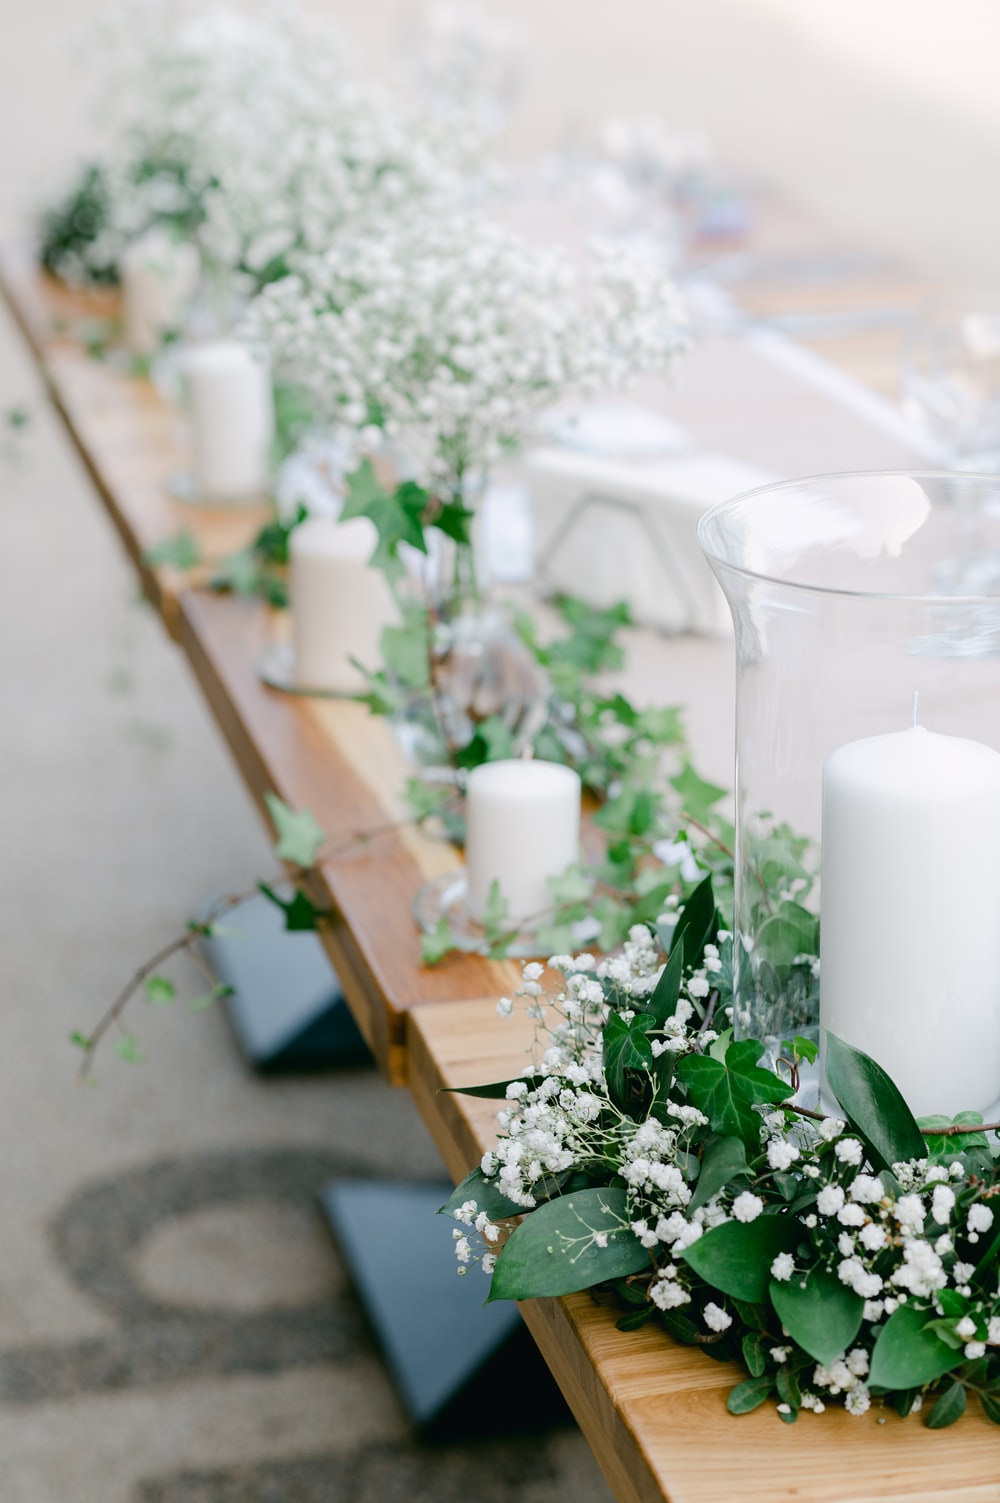 white pillar candle on brown wooden table